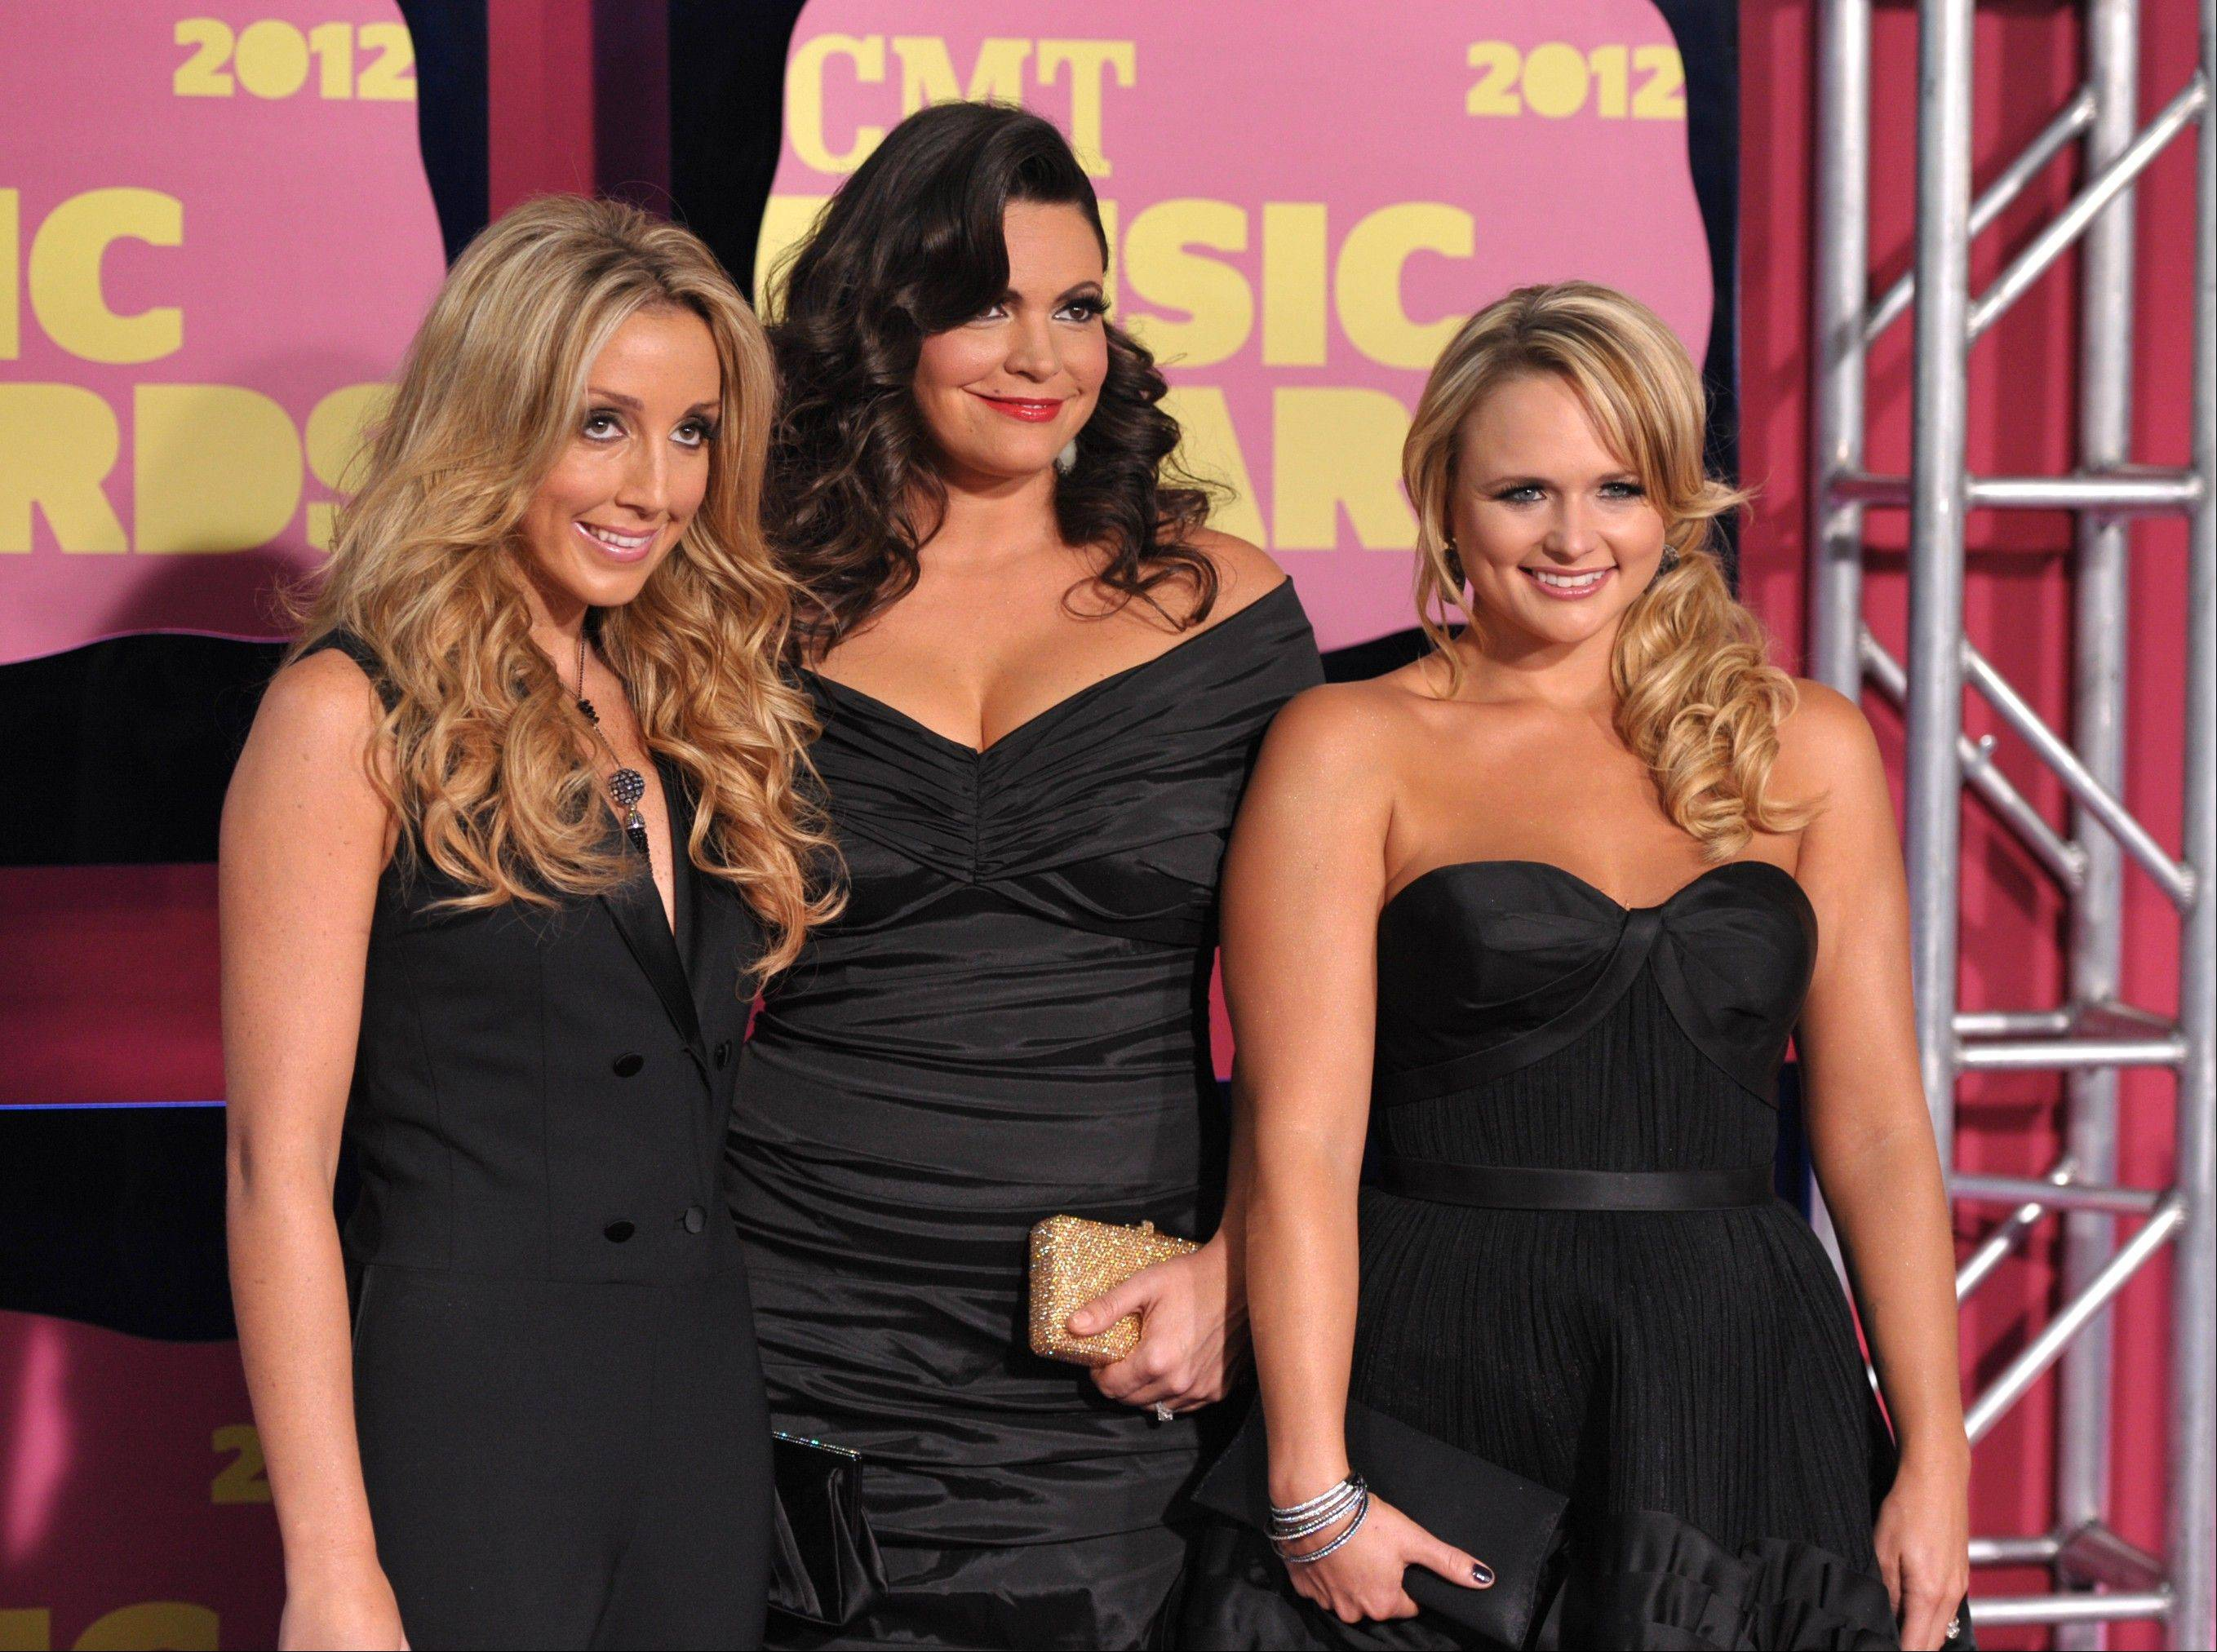 From left, Ashley Monroe, Angaleena Presley and Miranda Lambert of Pistol Annies arrive at the 2012 CMT Music Awards on Wednesday, June 6, 2012 in Nashville, Tenn.